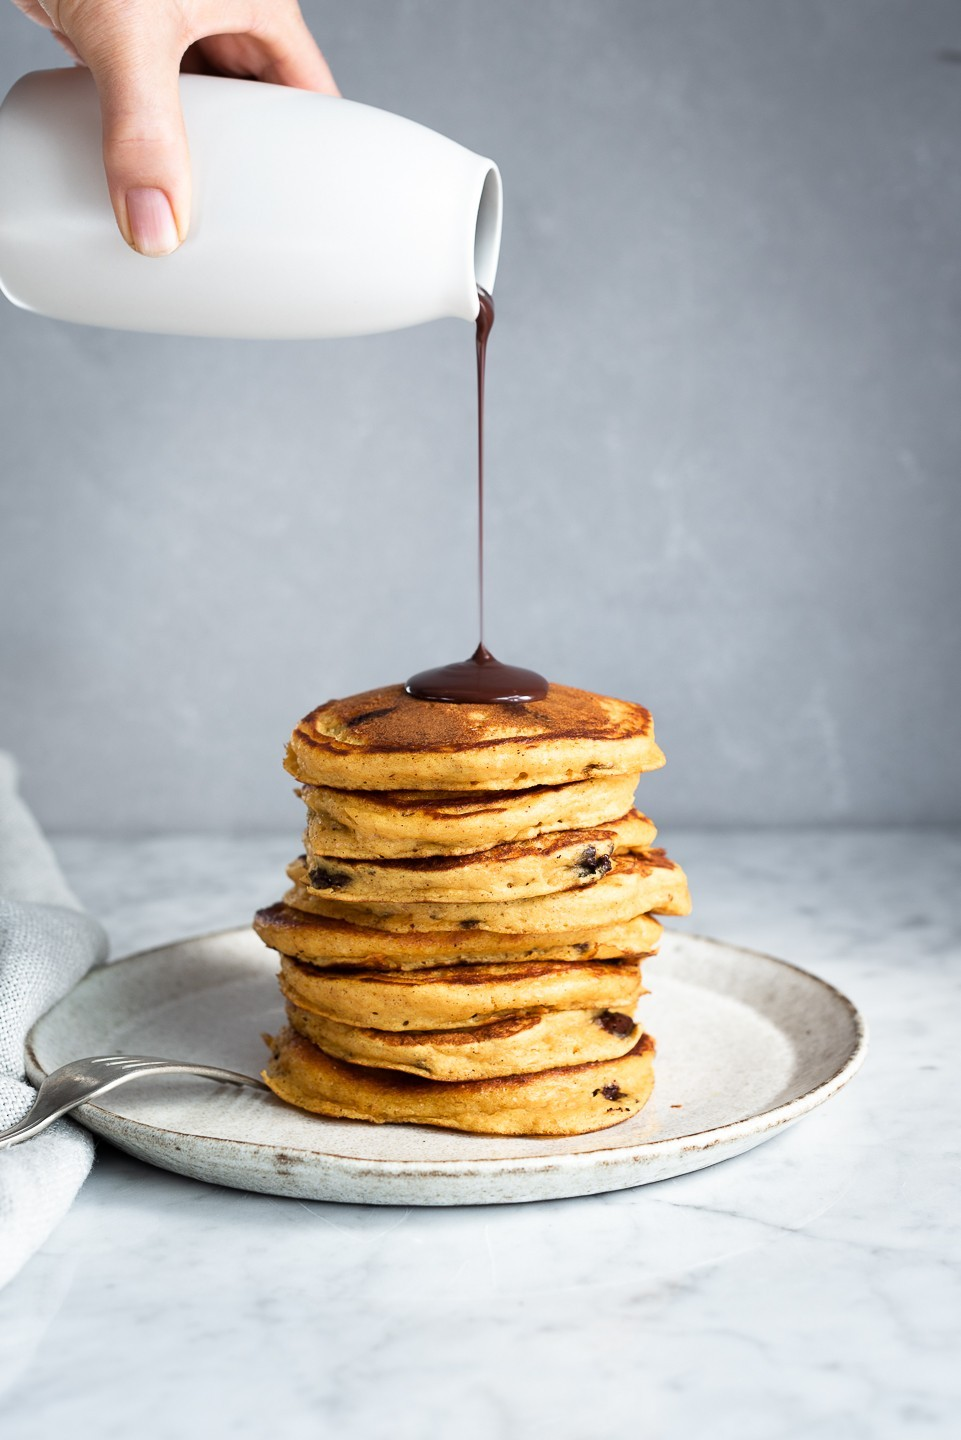 Fluffy choc-chip pumpkin pancakes | Bibbyskitchen breakfast recipes